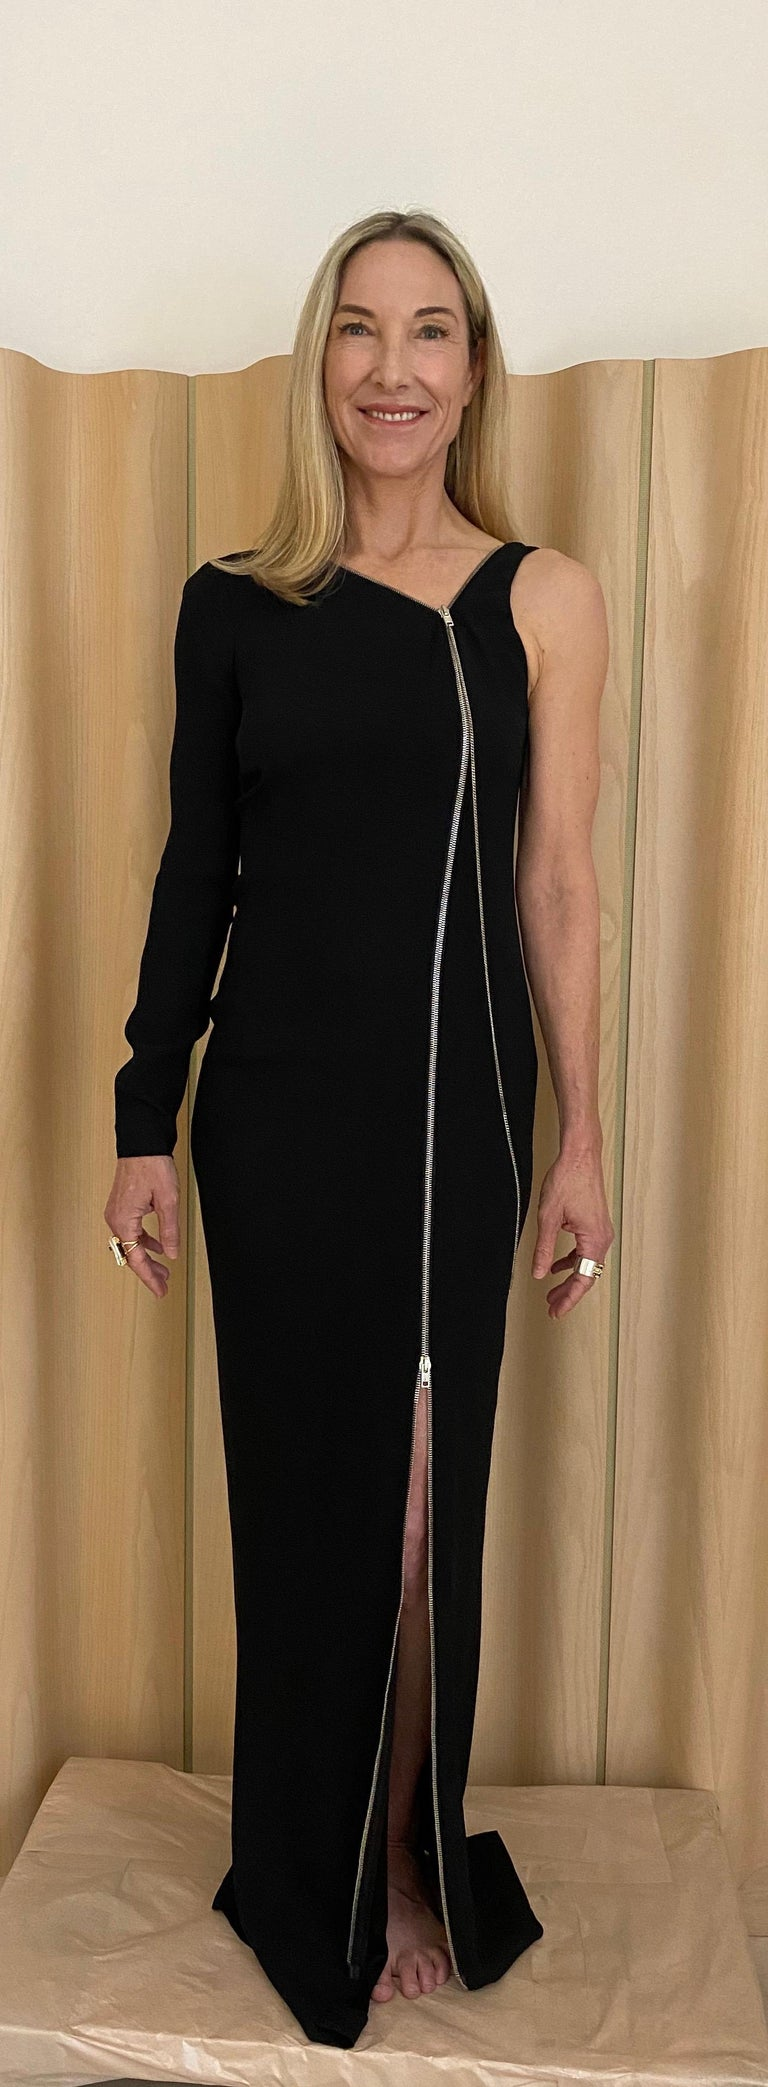 Jean Paul Gaultier Black Crepe Zipper Dress In Excellent Condition For Sale In Beverly Hills, CA